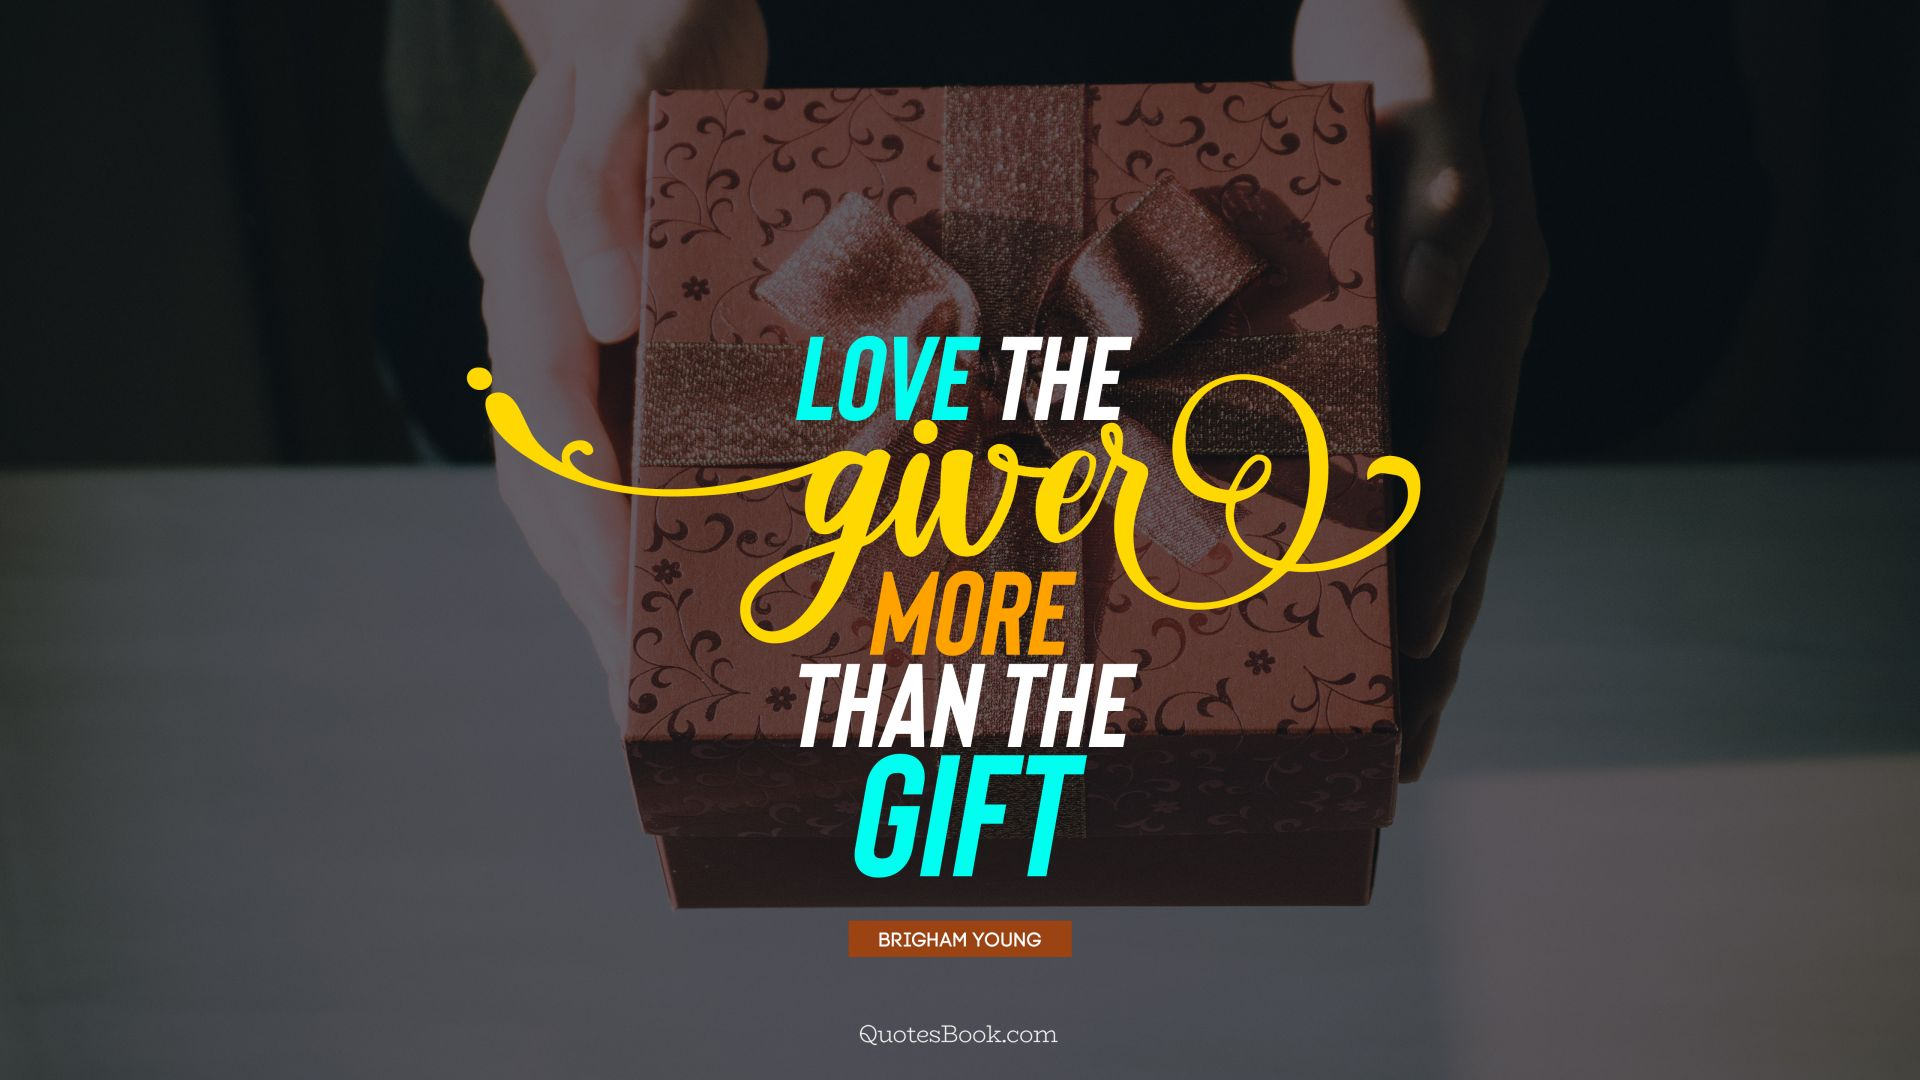 Love the giver more than the gift. - Quote by Brigham Young